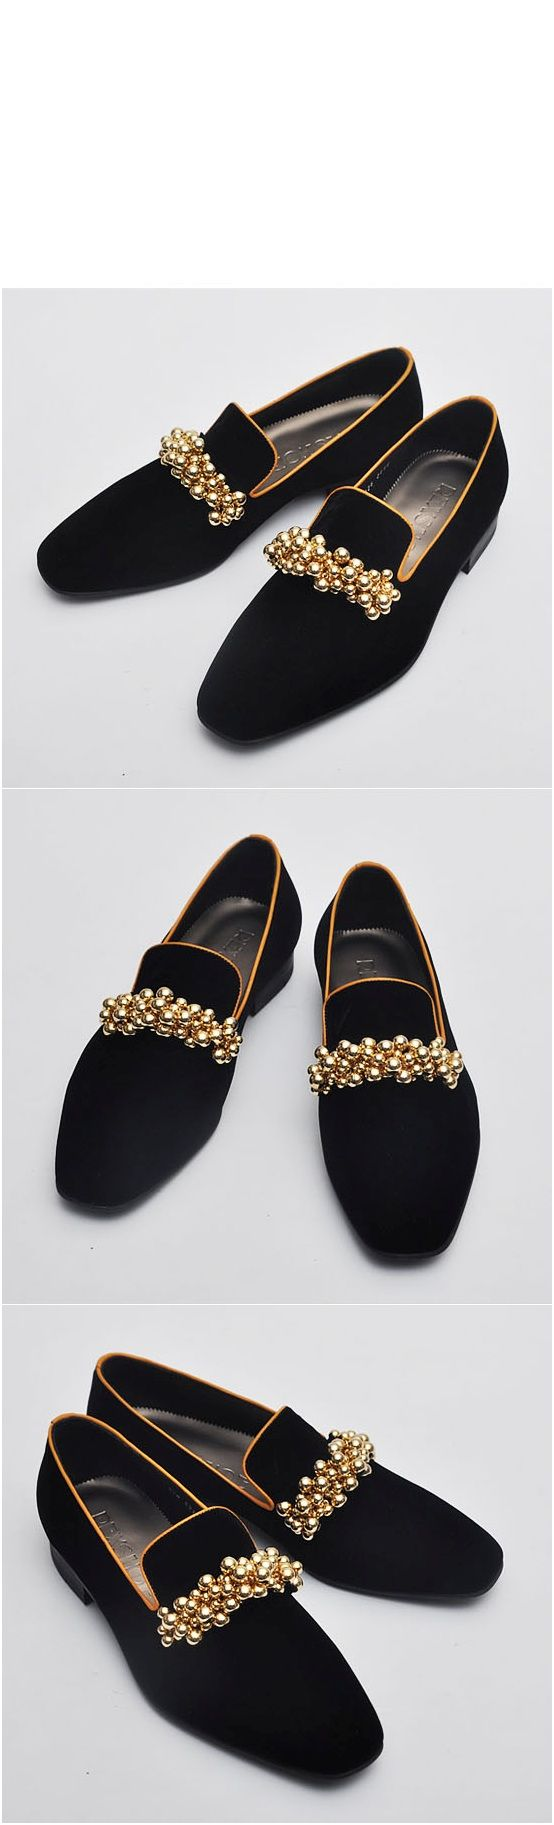 Lux Gold Tasselissimo Velvet Shoes - shoes 35 - NSIE NewStylish